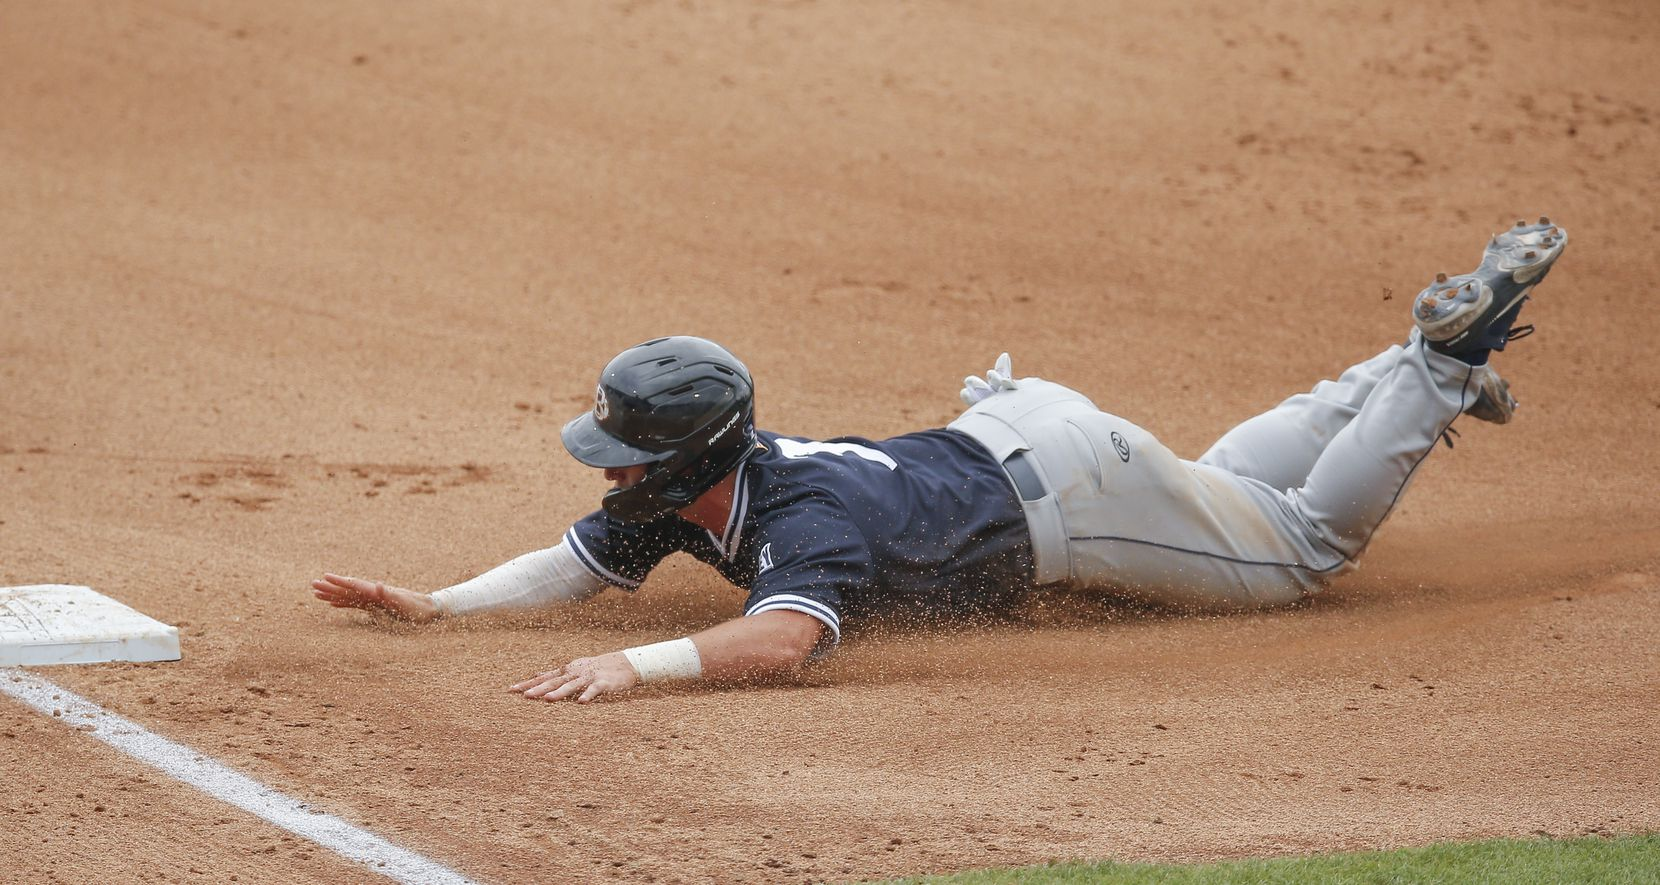 DBU's Jackson Glenn (3) dives into third in the fourth inning during the NCAA Fort Worth Regional baseball tournament against Oregon St. at TCU's Lupton Stadium in Fort Worth, Friday, June 4, 2021. Dallas Baptist won 6-5. (Brandon Wade/Special Contributor)